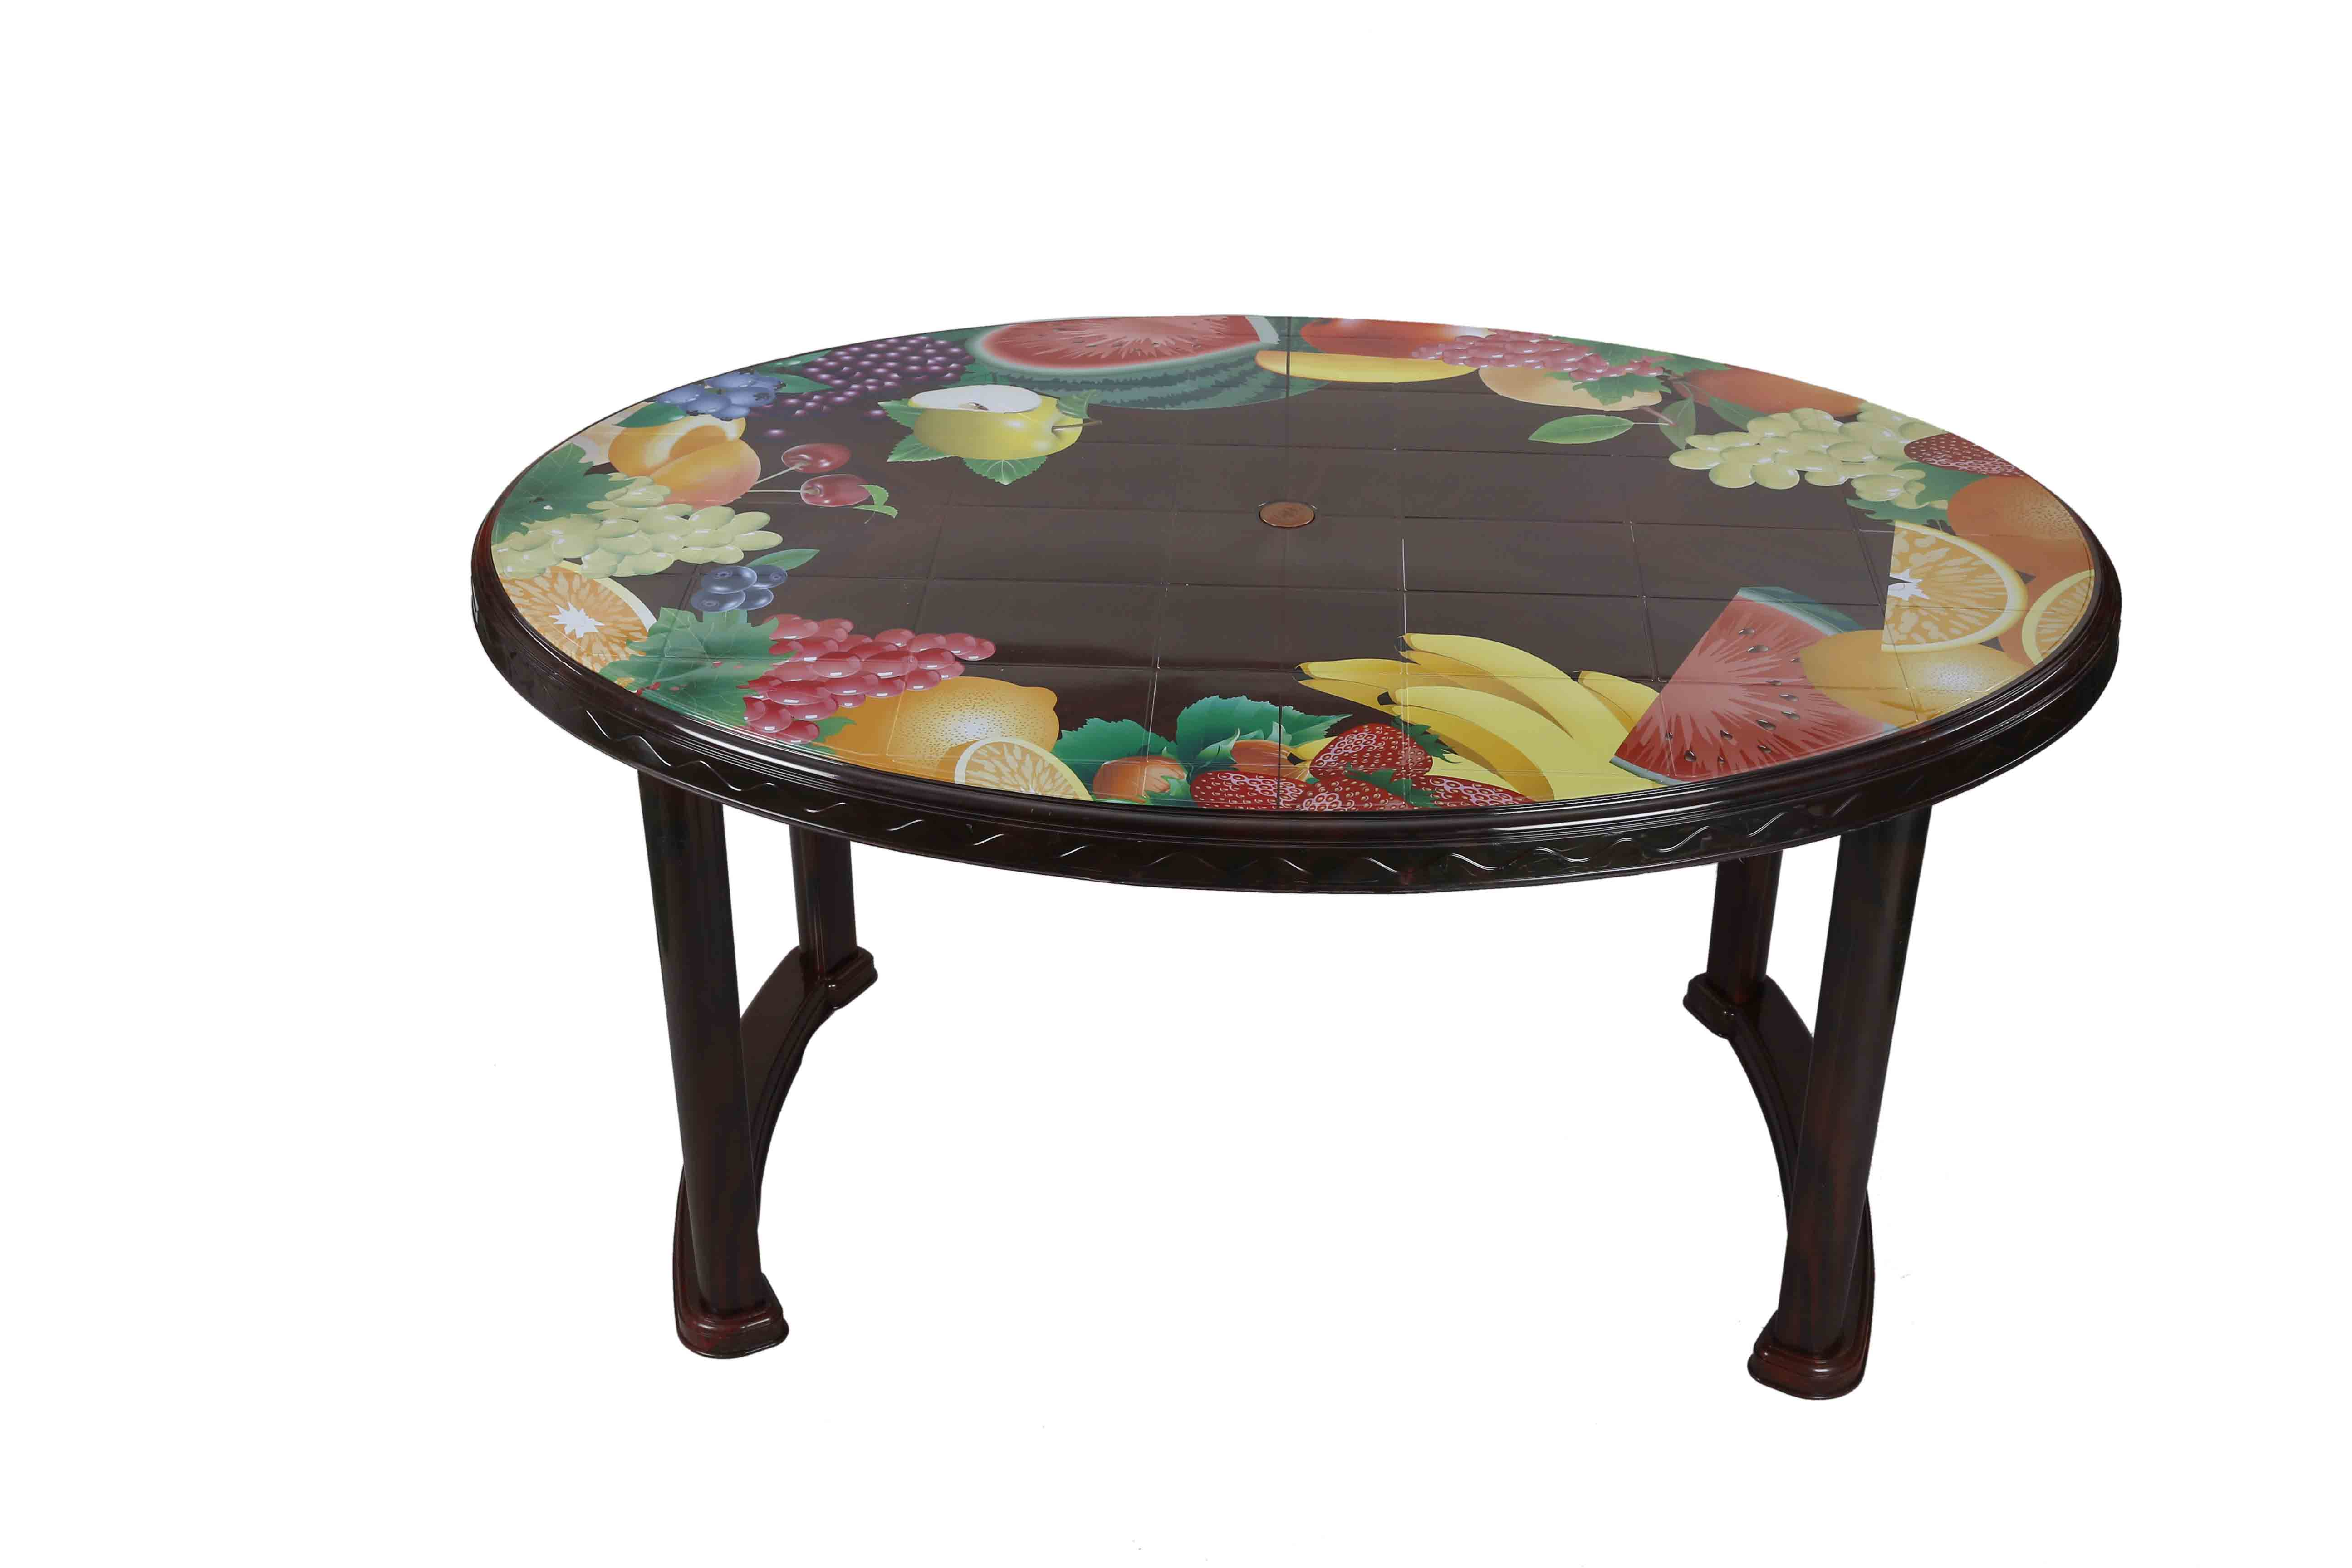 Dining Table 6 Seat Oval PL Print Mixed Fruit -RW